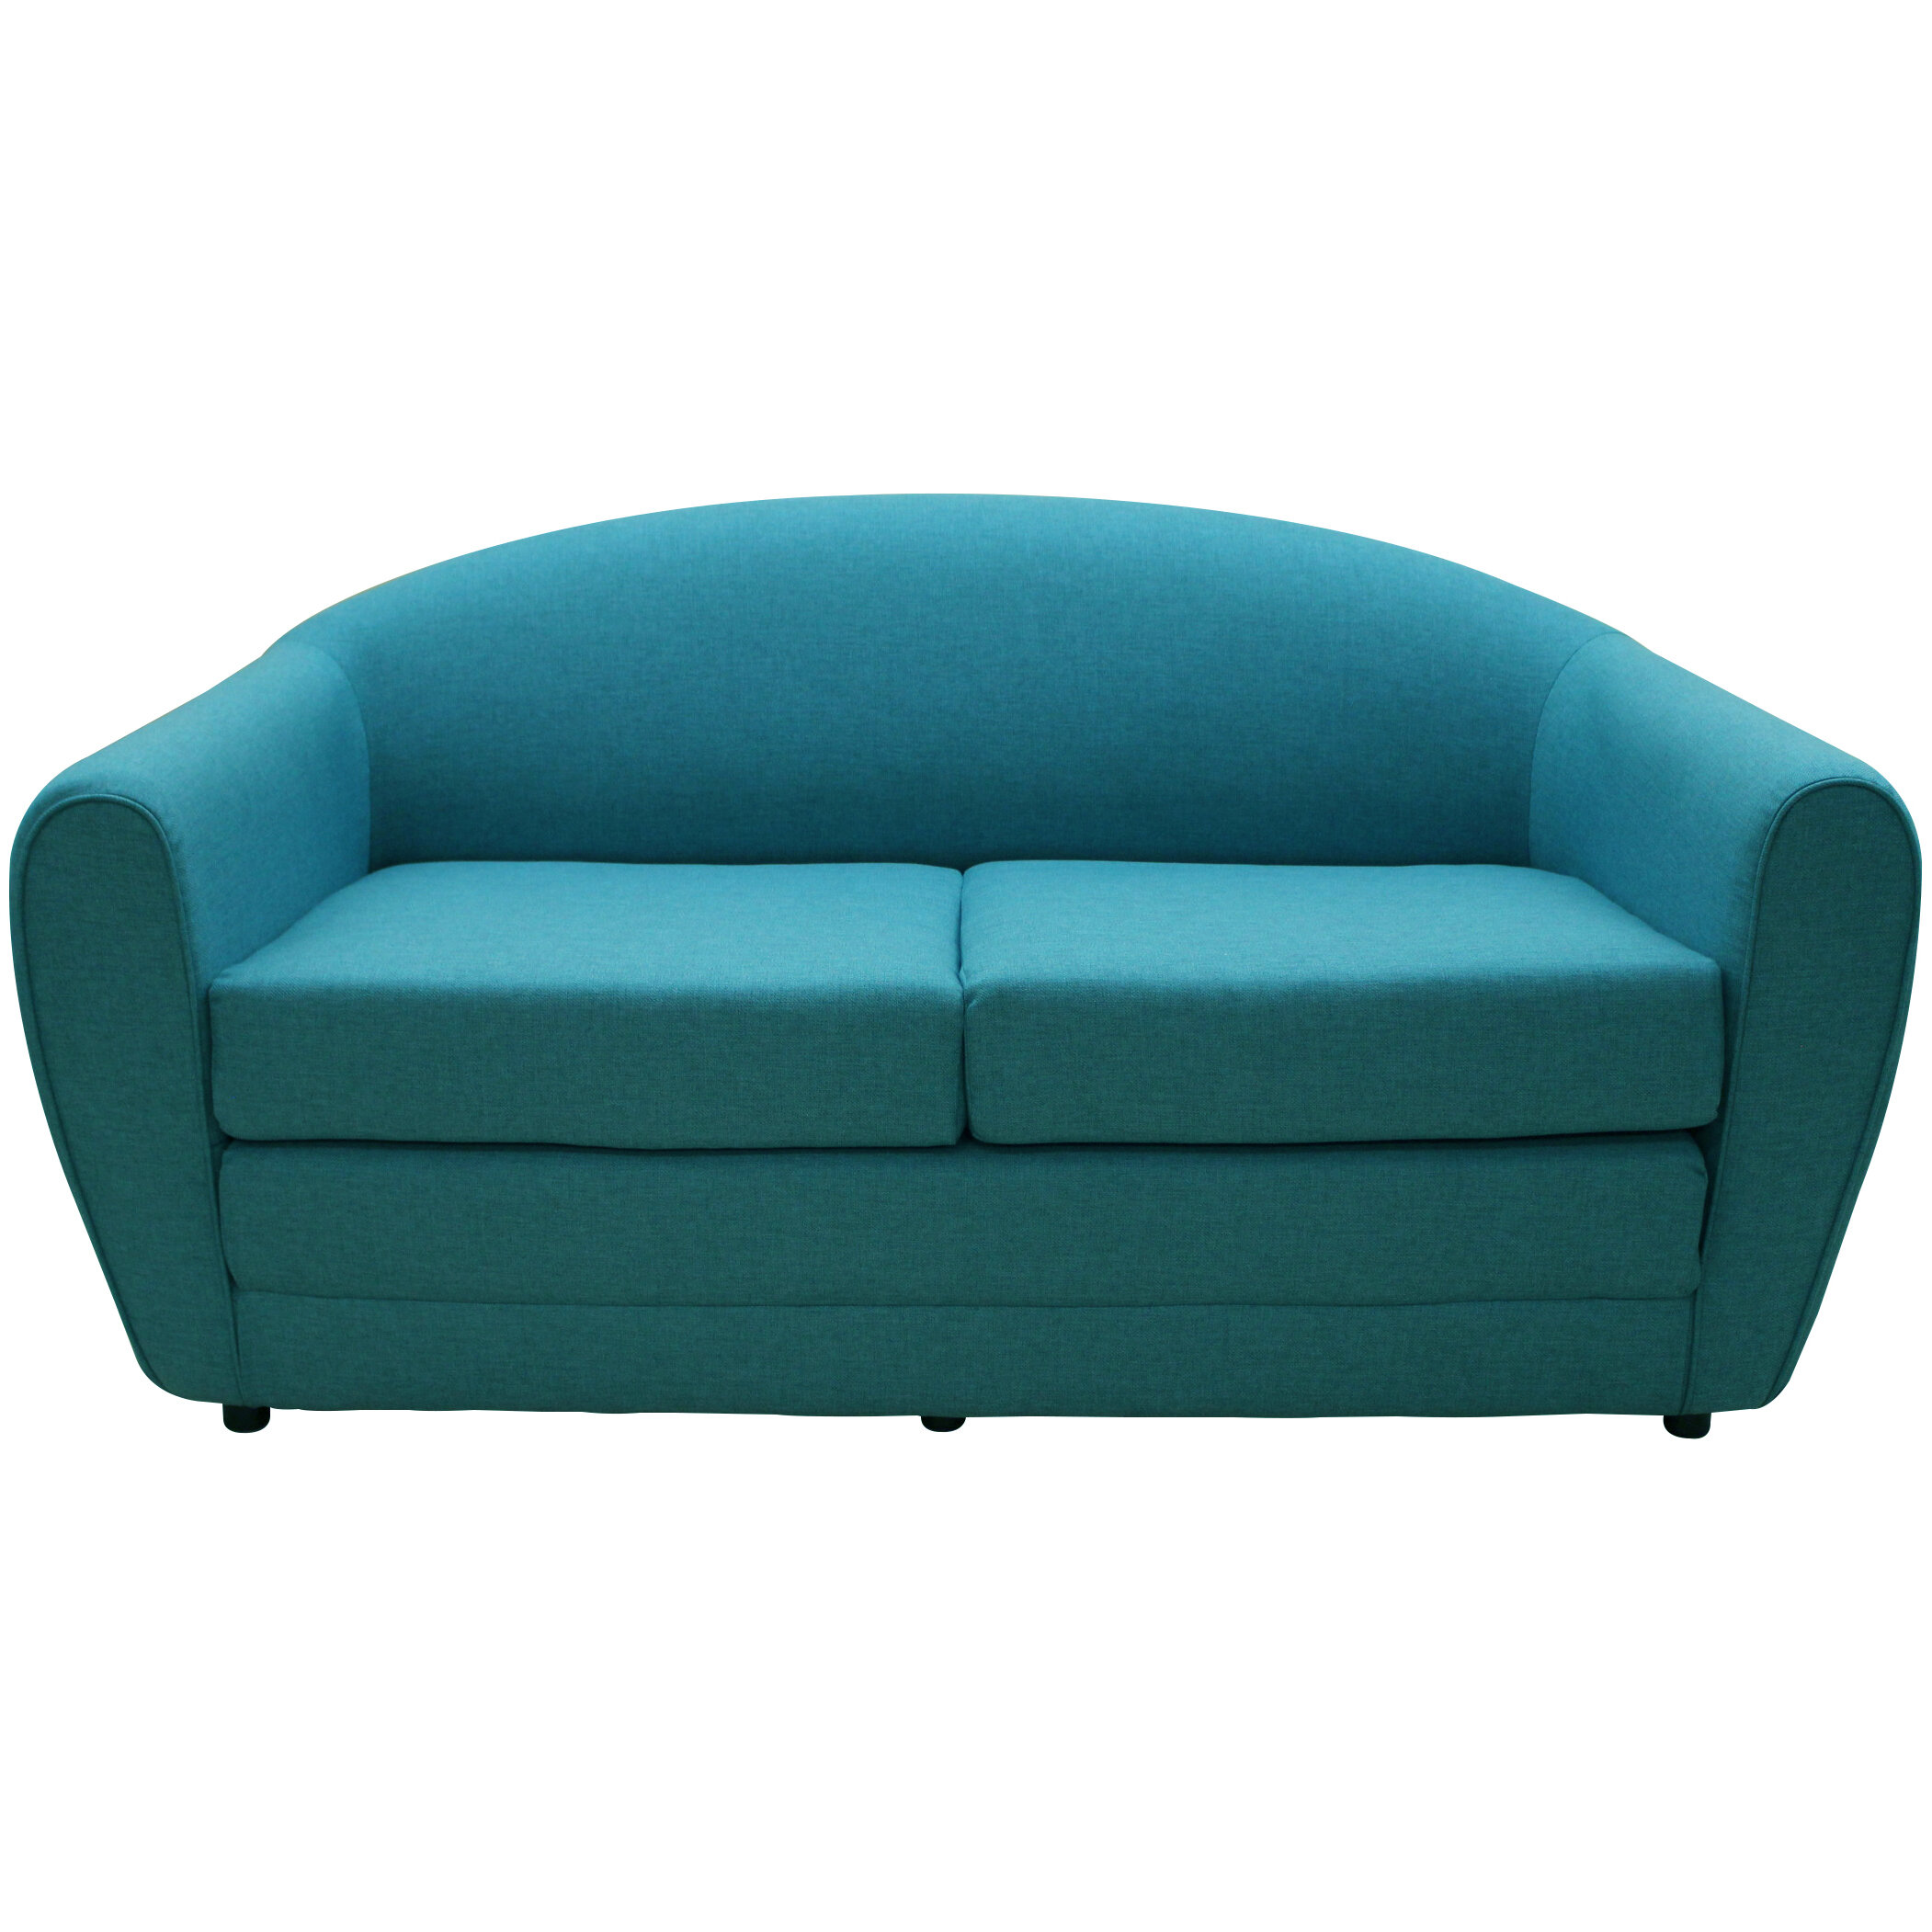 seat janley front products rail loveseat number sleeper contemporary item rooms wood with love benchcraft